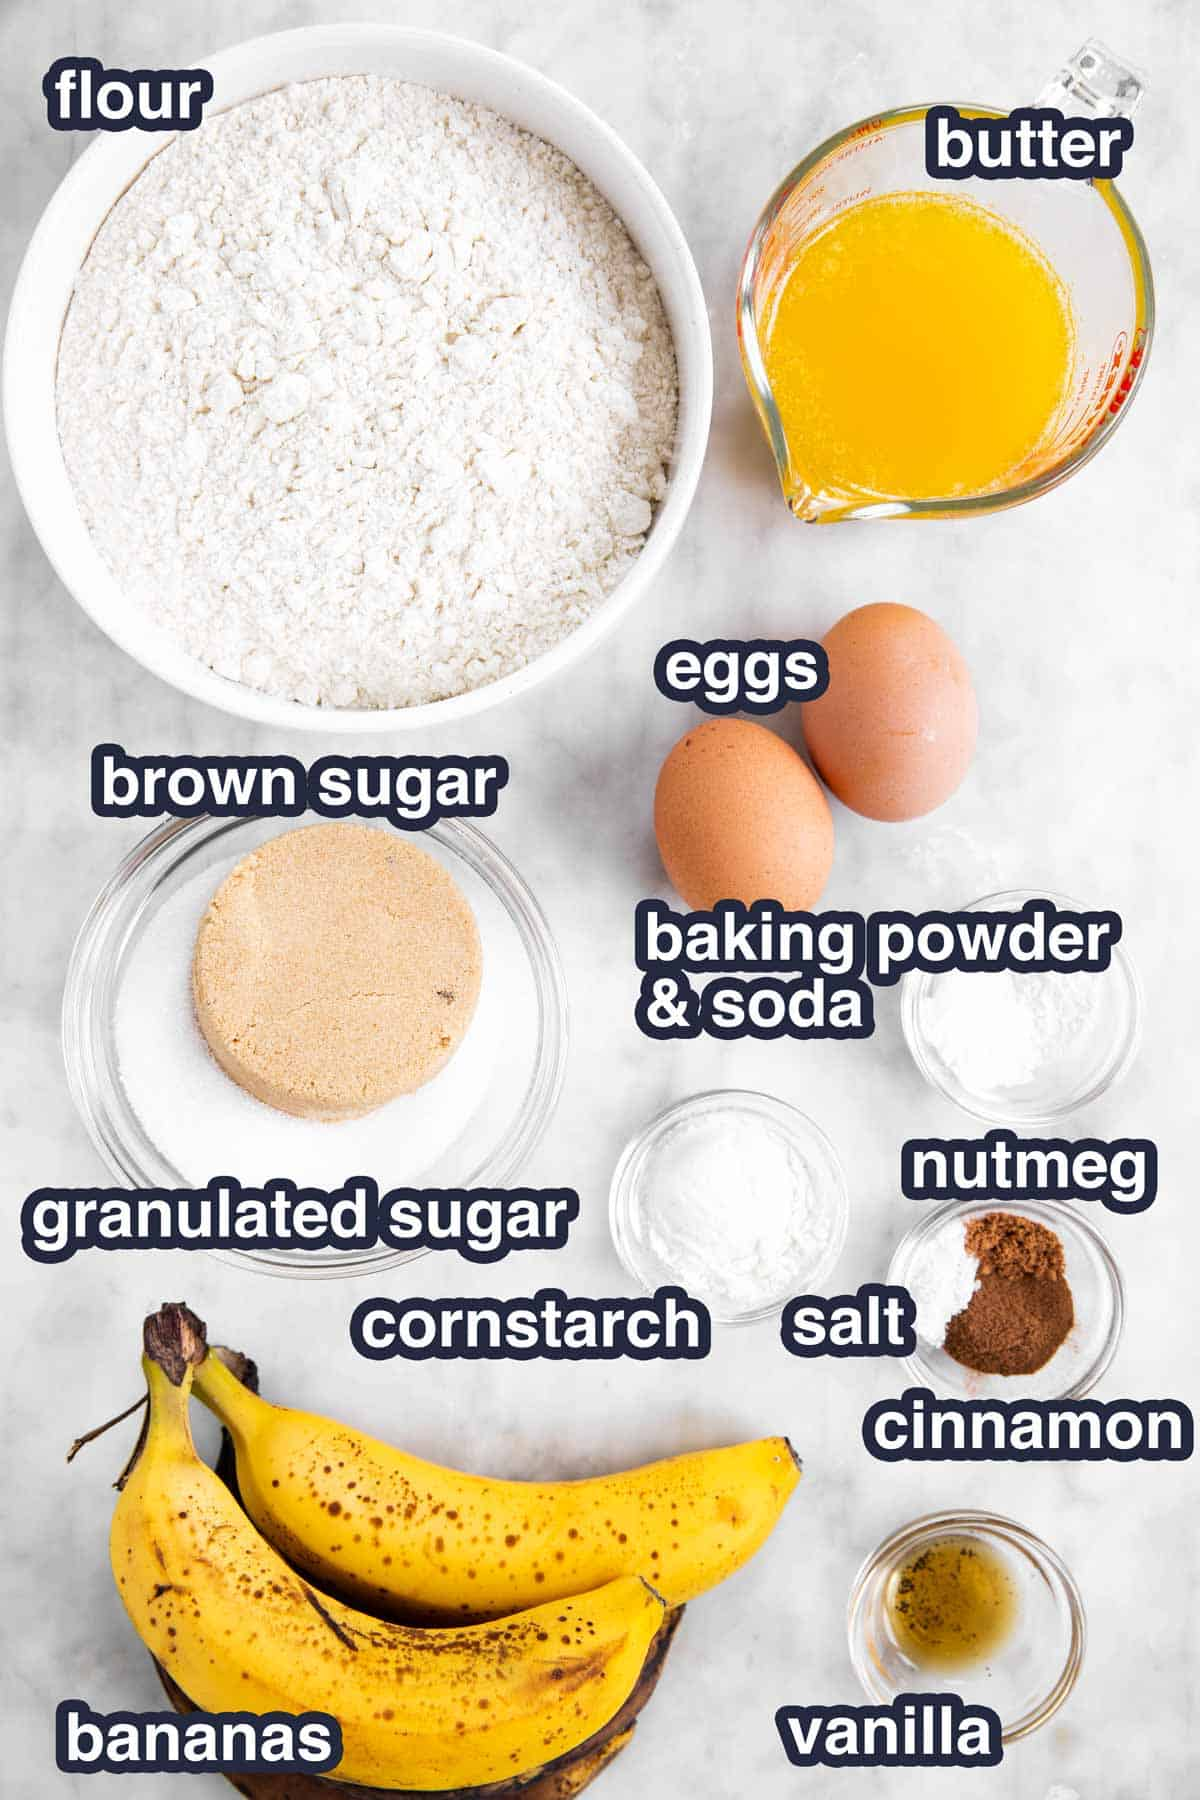 ingredients for banana bread with text labels